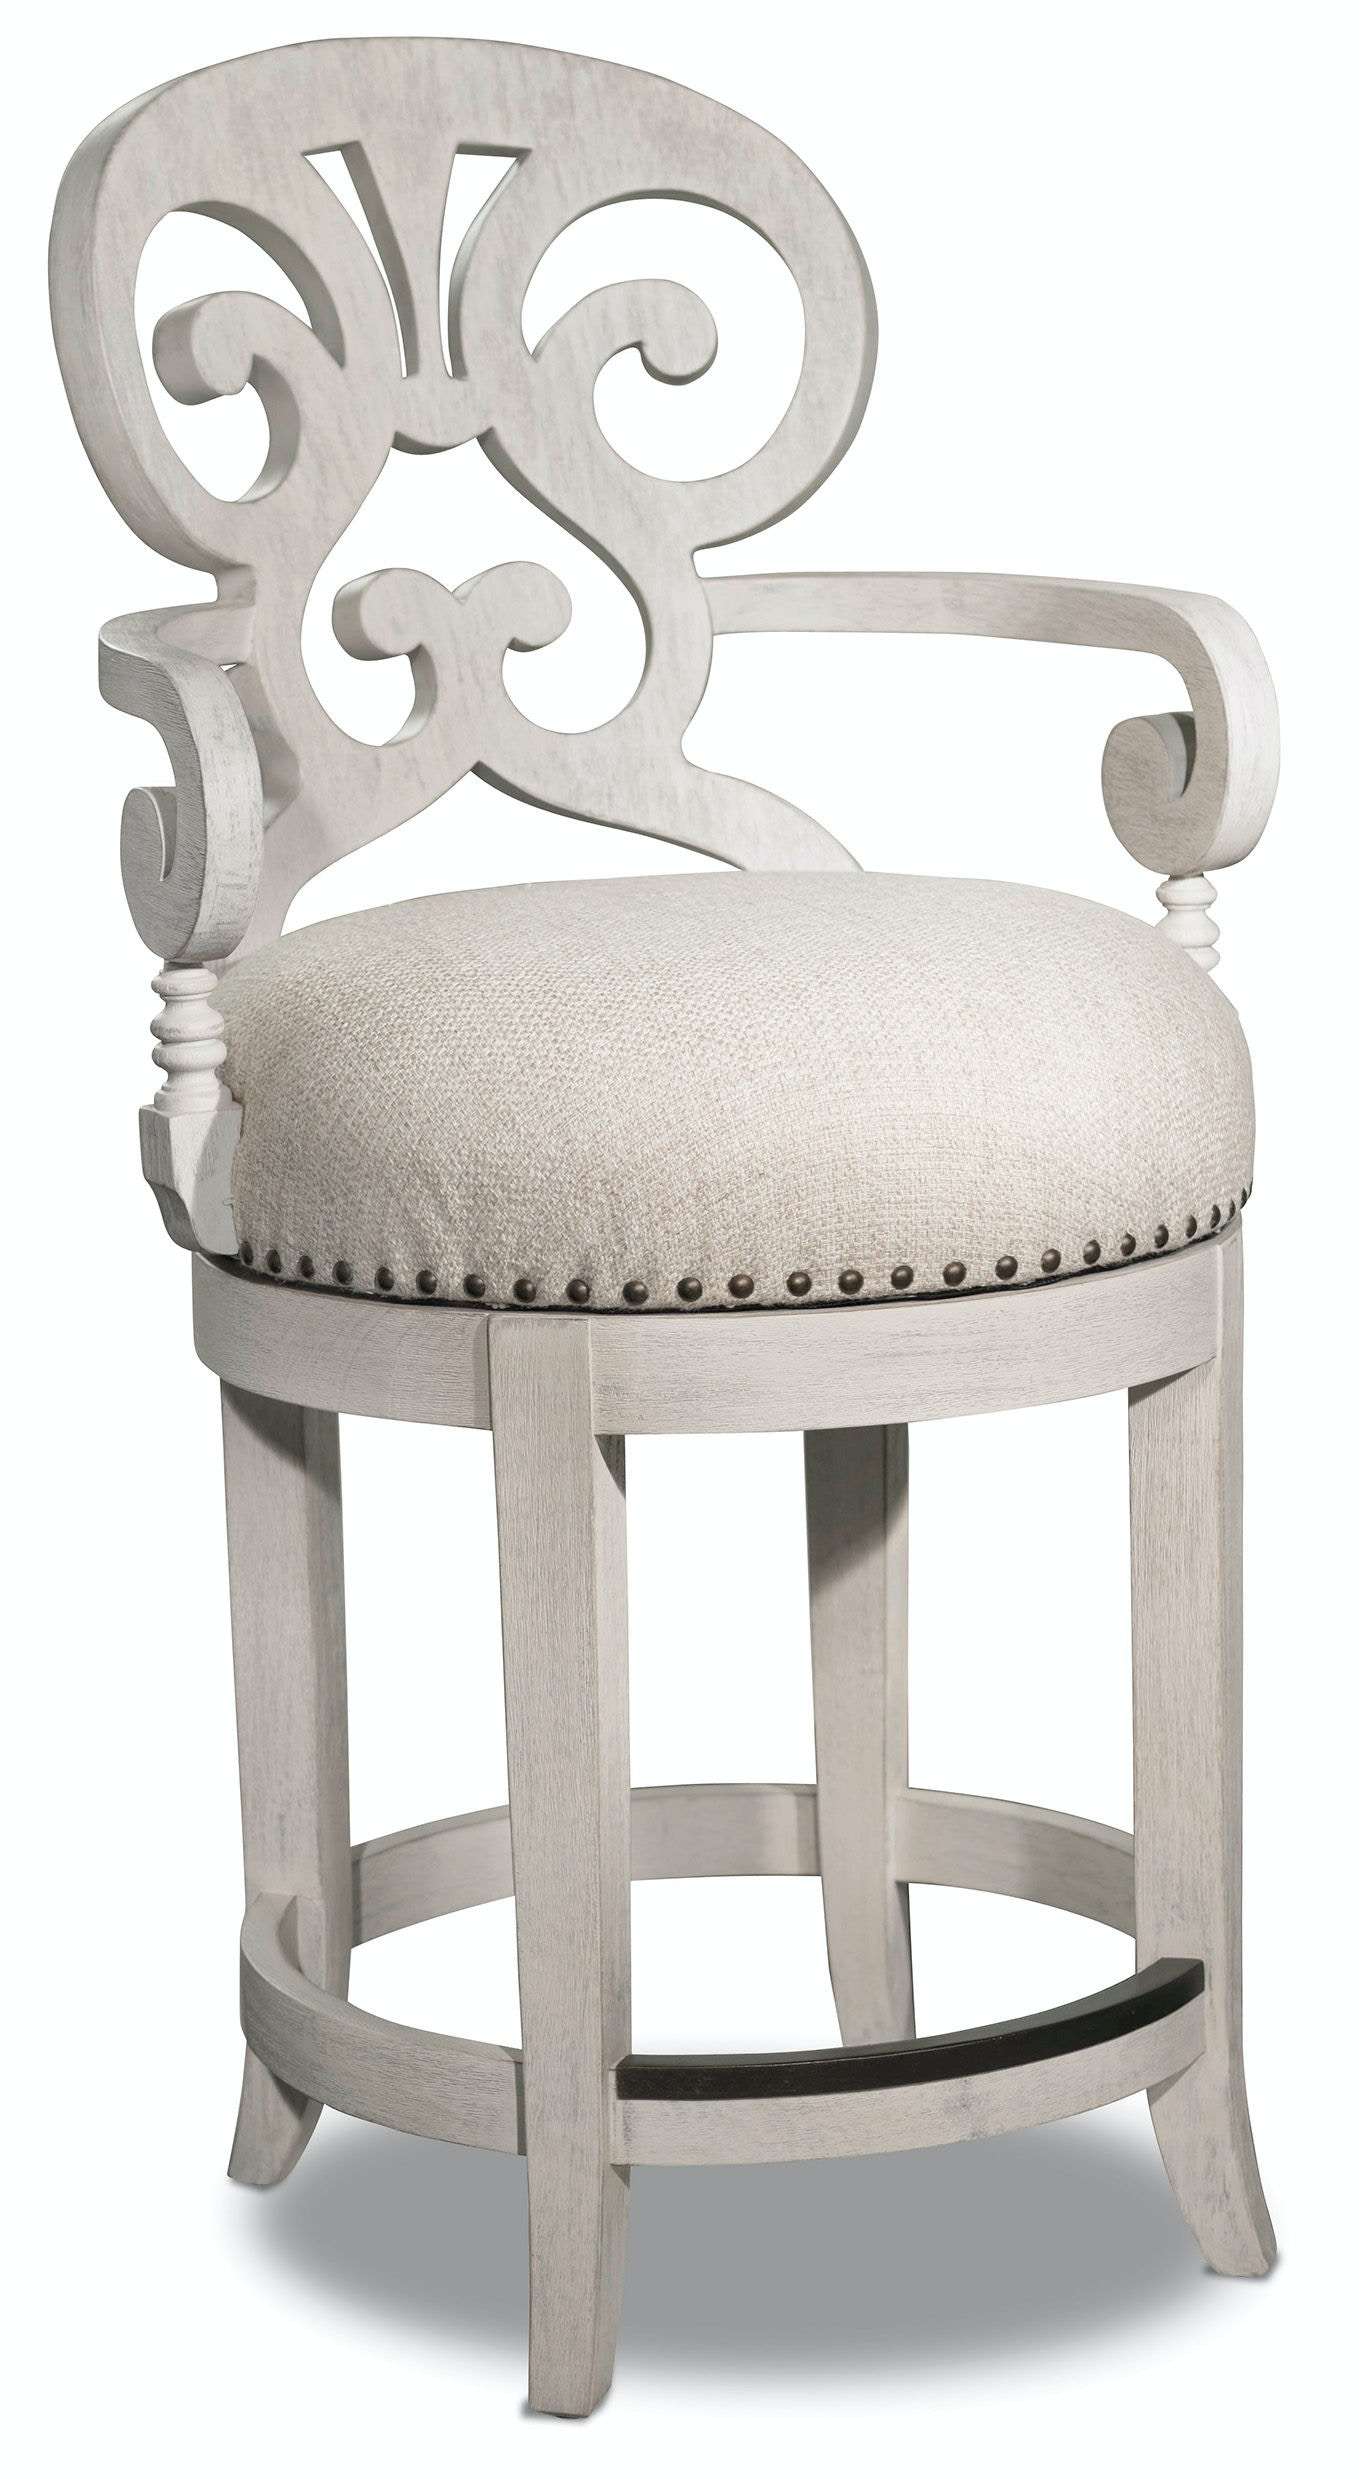 Hooker Furniture Mimosa Counter Stool 300-25006